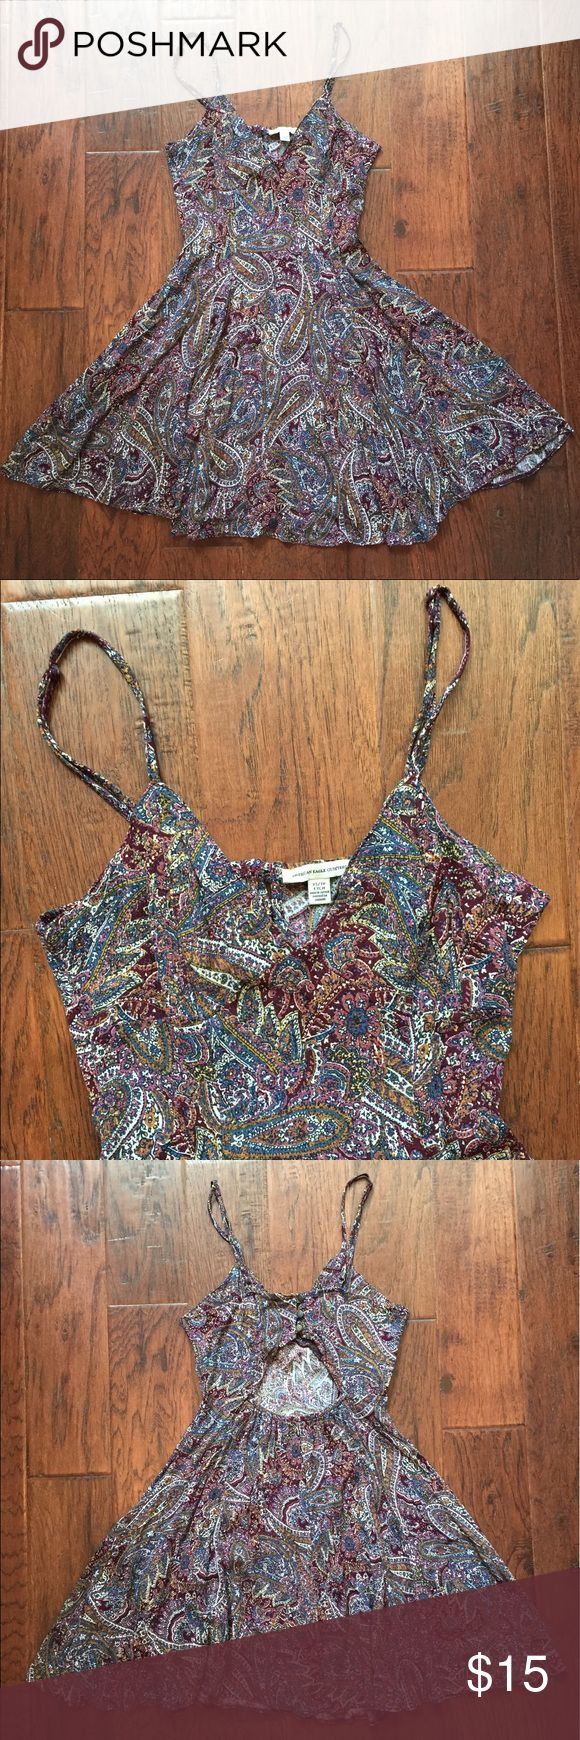 American Eagle Paisley Dress American Eagle Dress - Paisley - Adjustable Spaghetti Straps - Back Cutout - Size XS - really cute dress, only worn once American Eagle Outfitters Dresses Mini